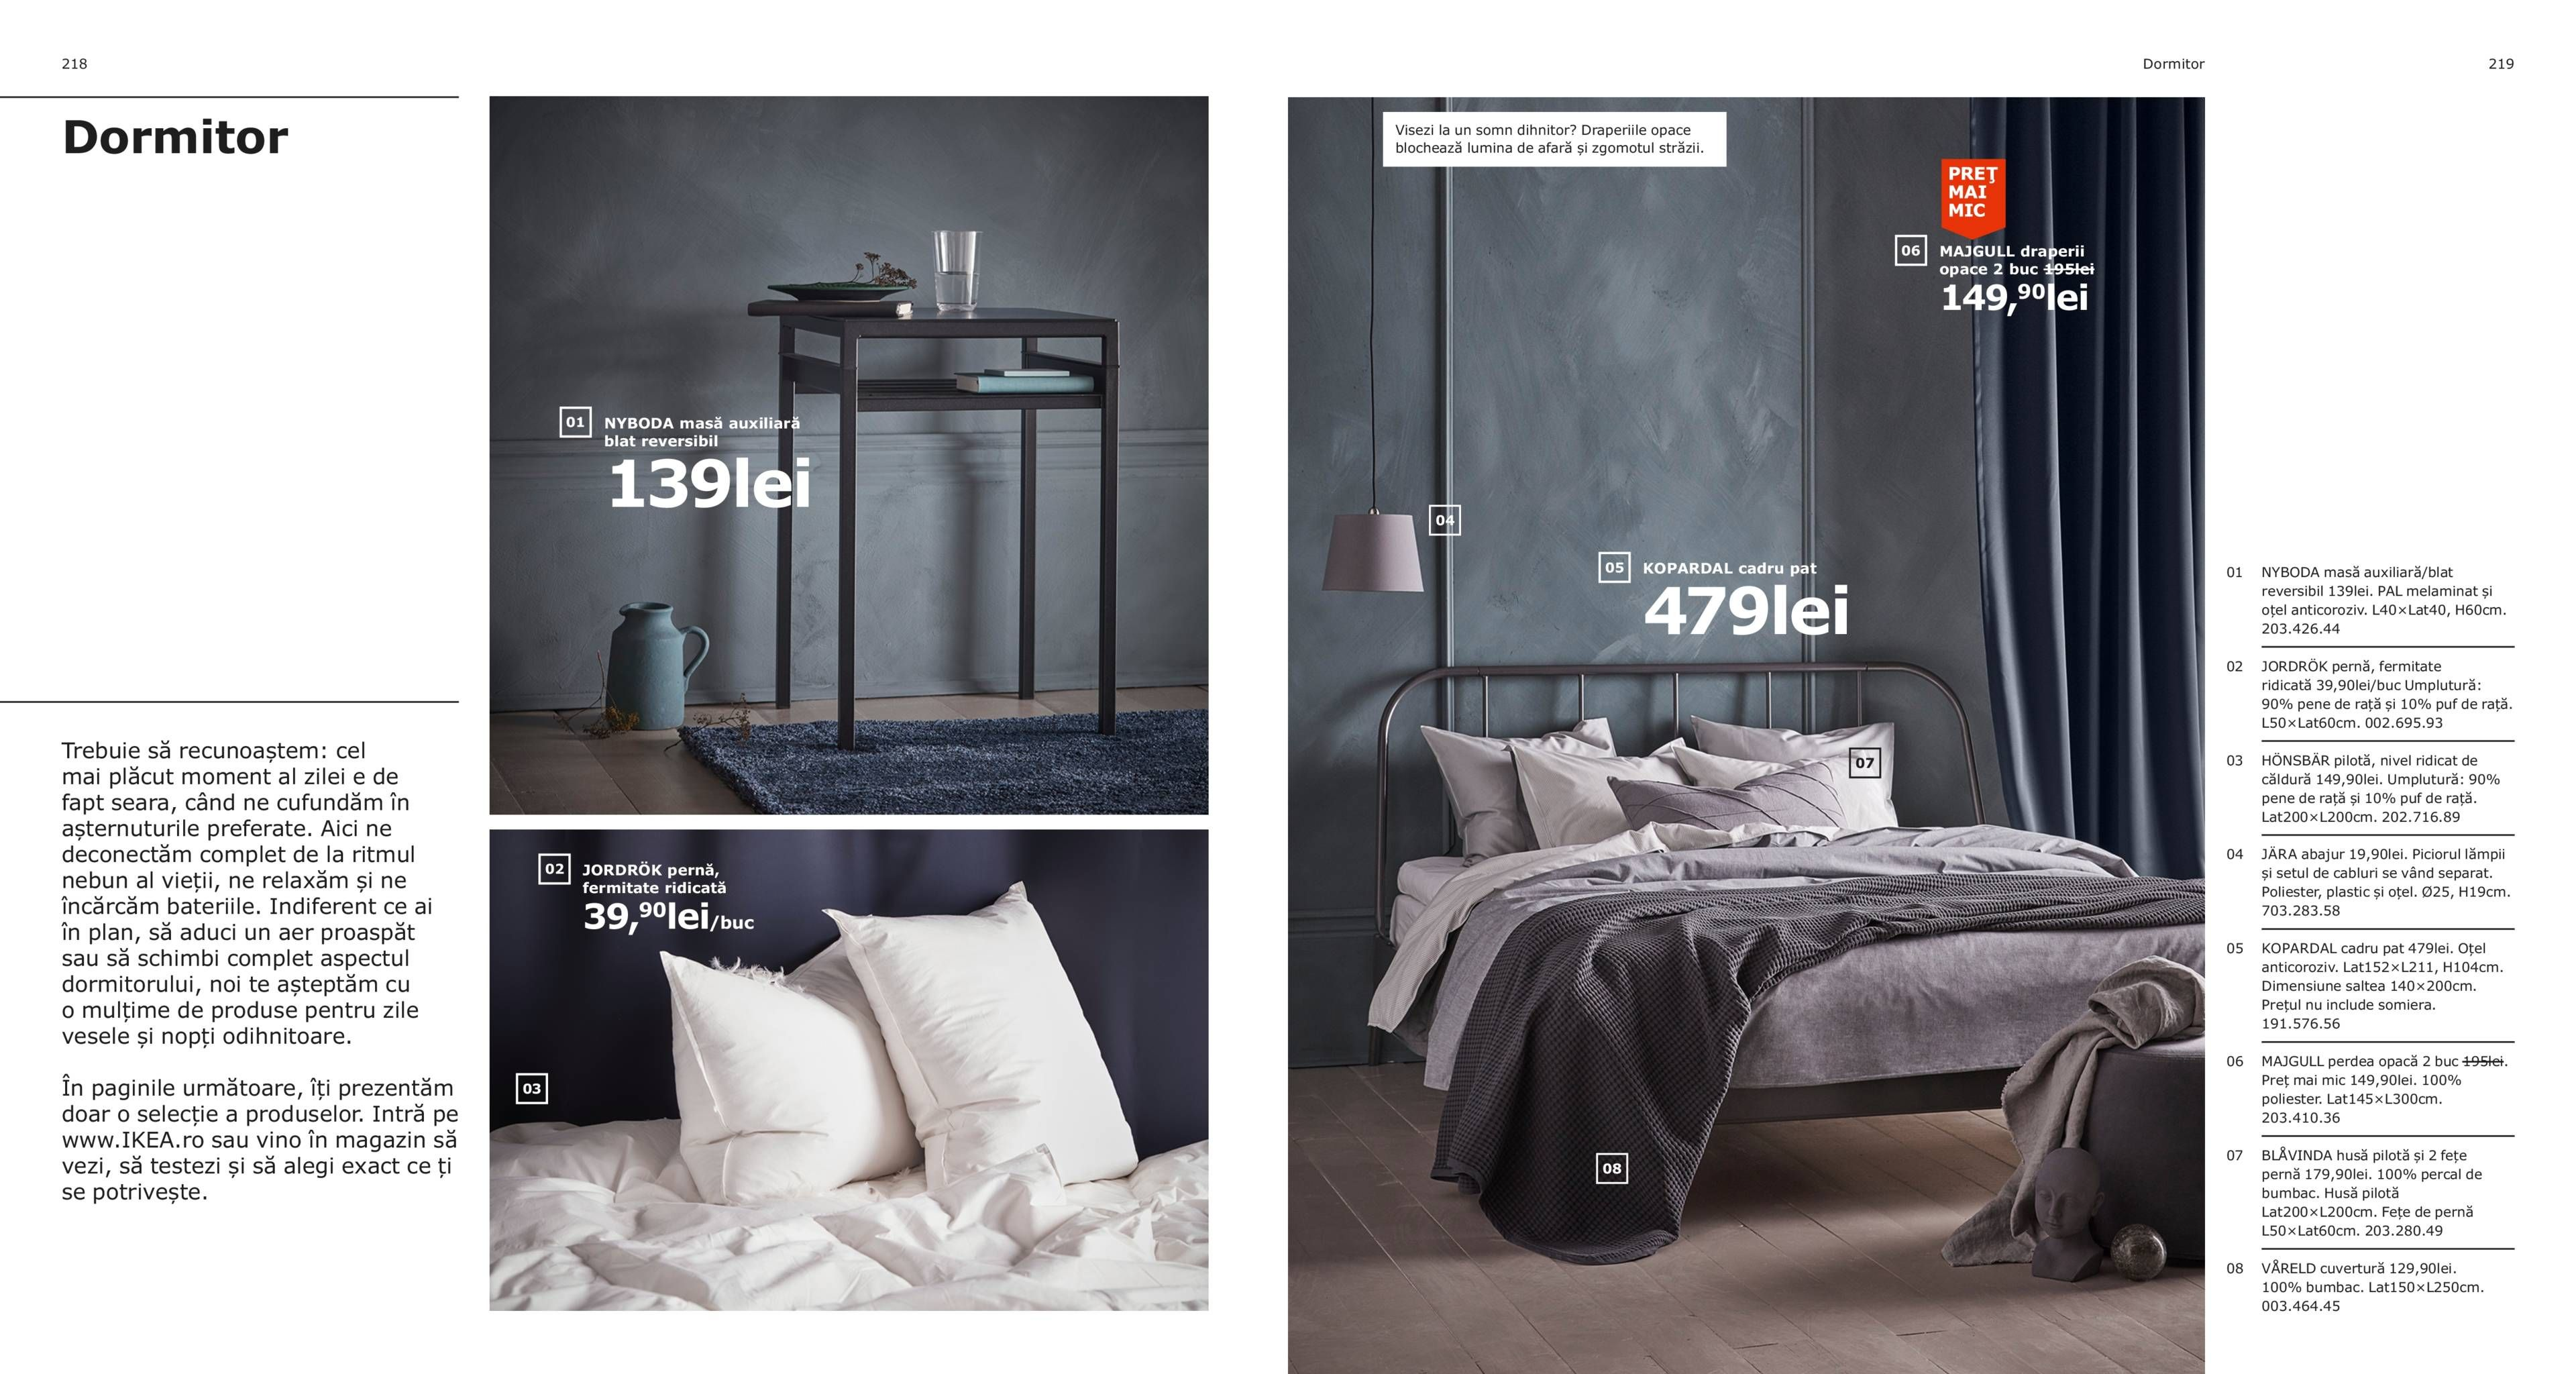 Dormitor Catalogul IKEA 2019 Ikea catalog, Ikea, Bedroom